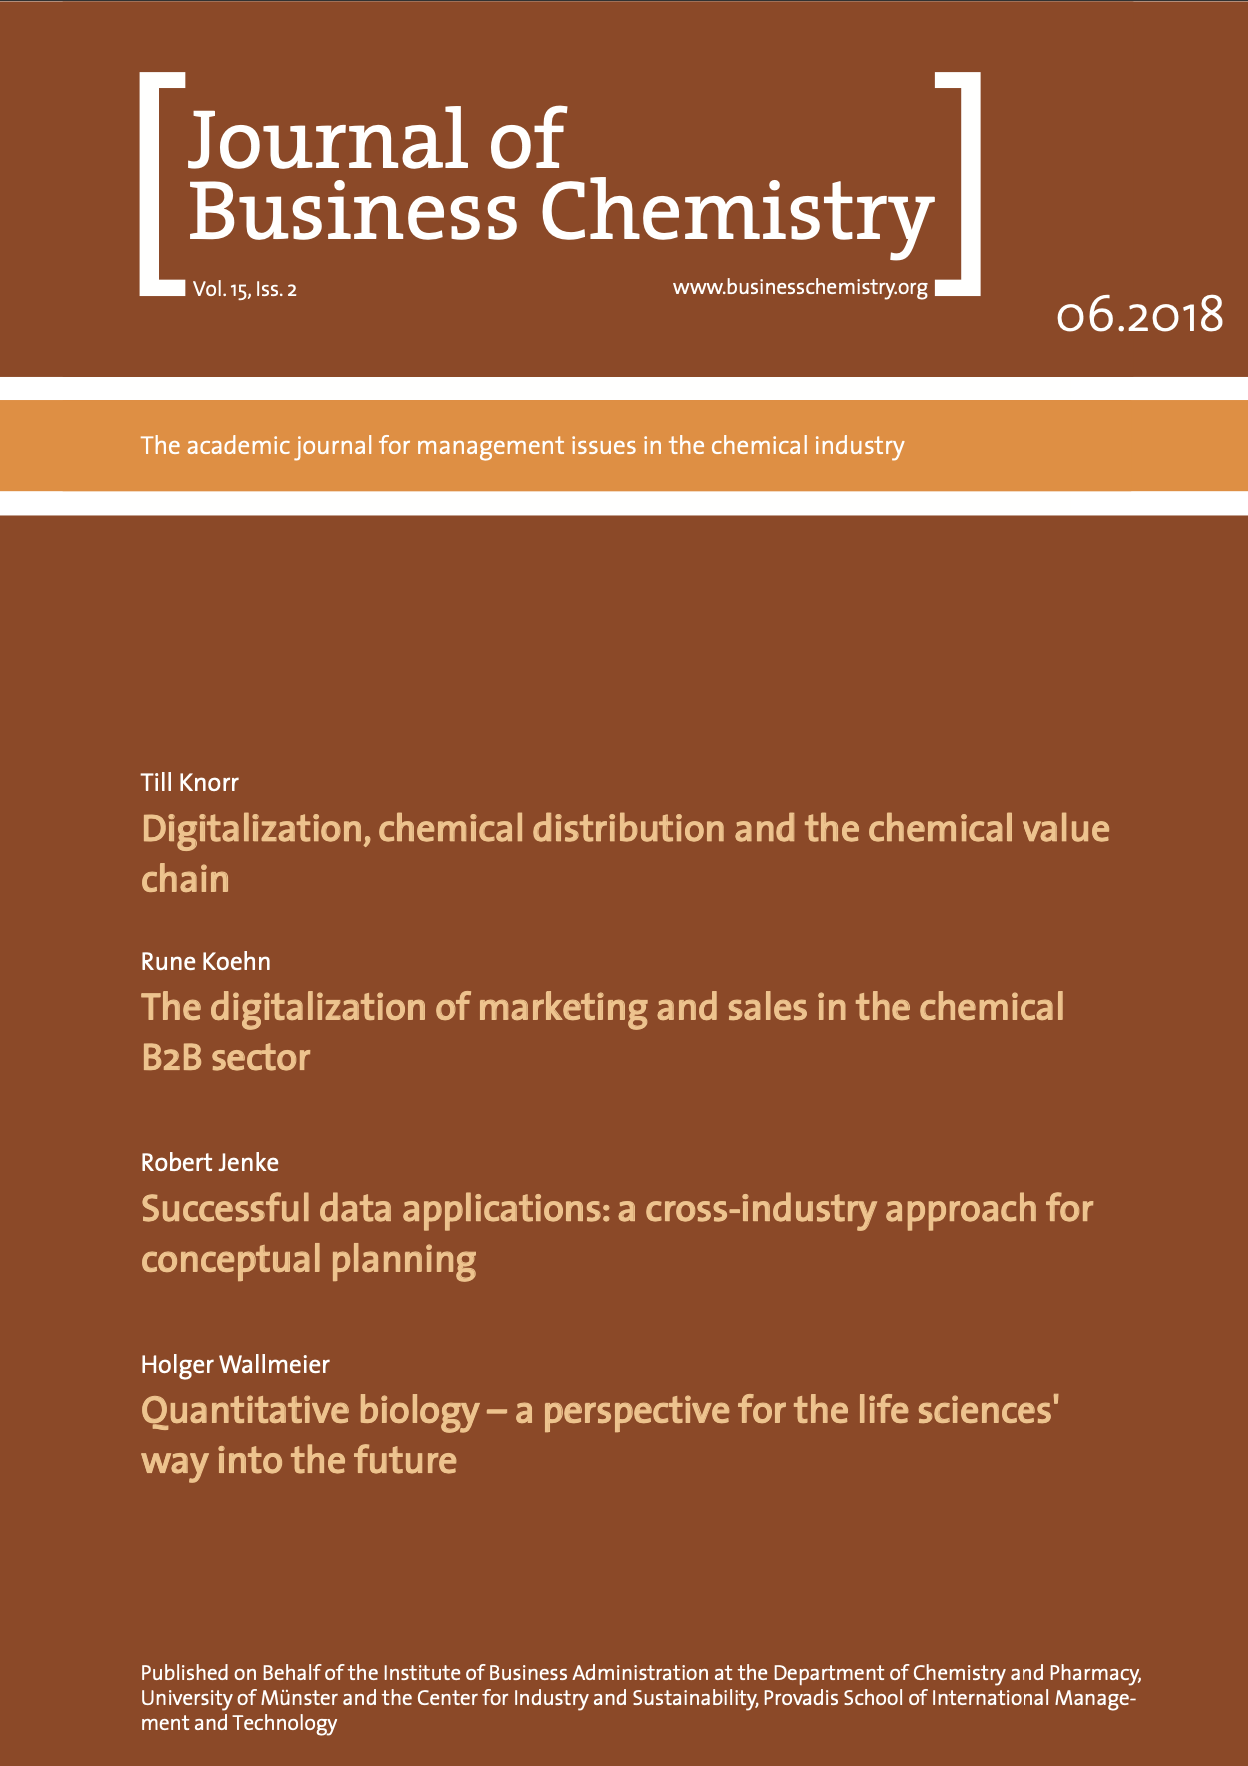 Journal of Business Chemistry June 2018